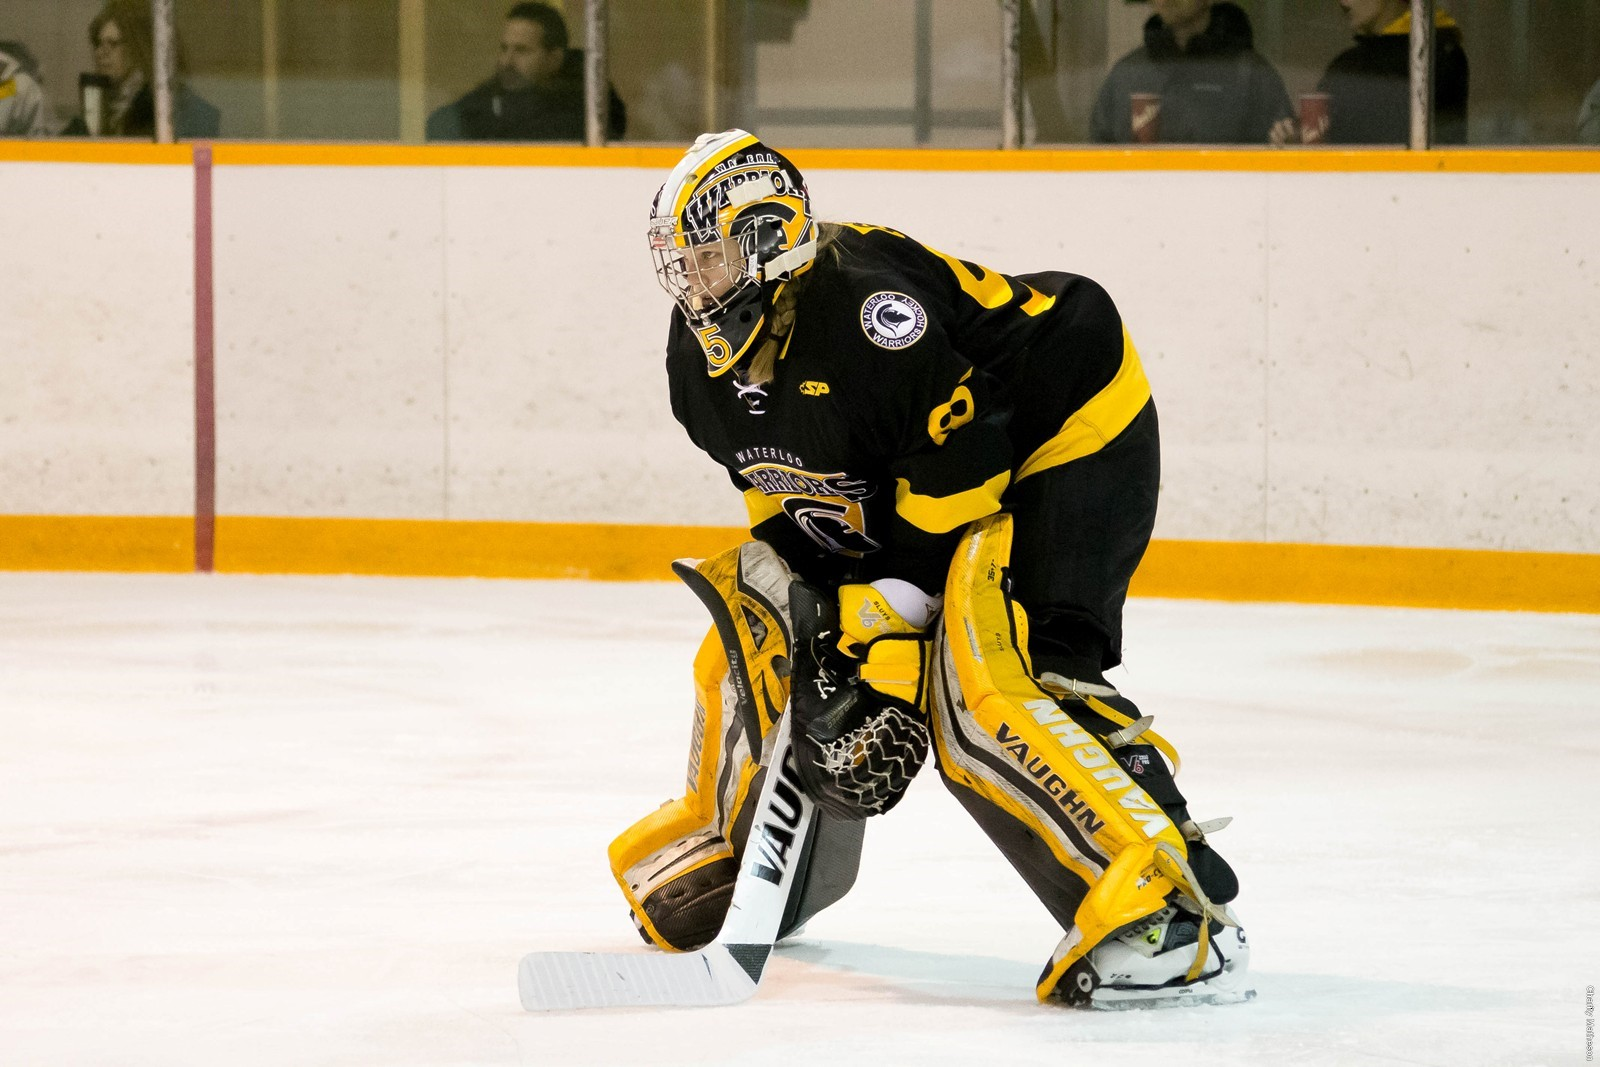 Stephanie Sluys stands at the top of her crease (ice hockey)